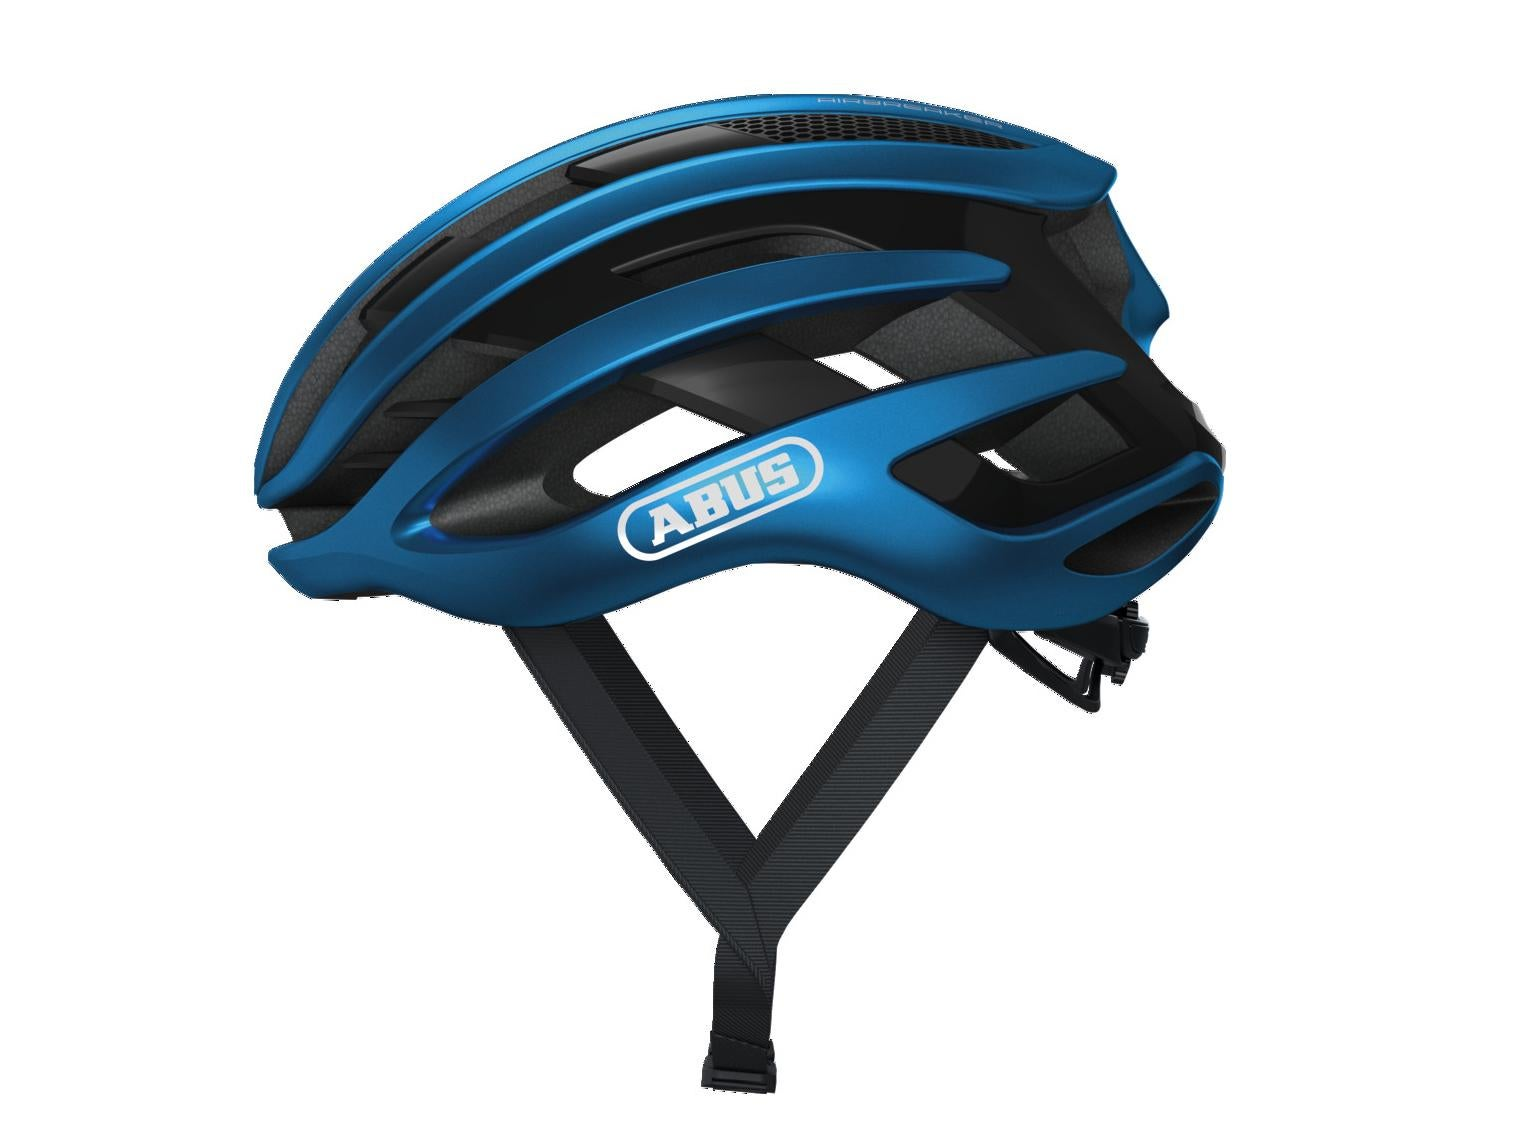 Best road cycle helmet for protection, being lightweight and